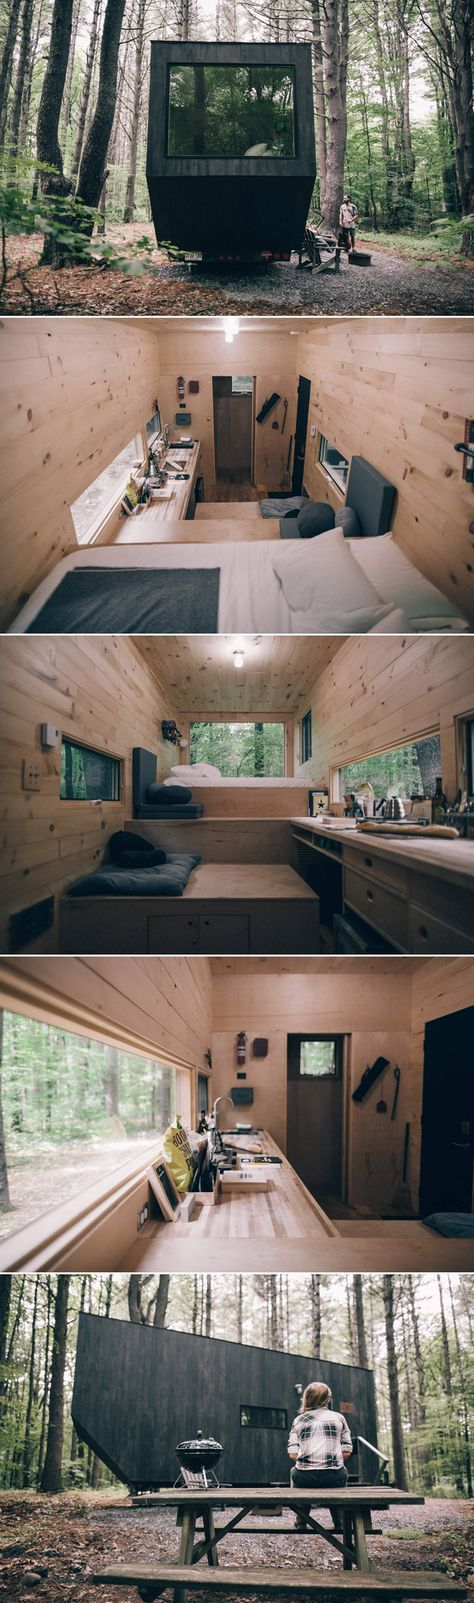 A Tiny House Located In The Woods Of Upstate New York. Available For  Nightly Rental